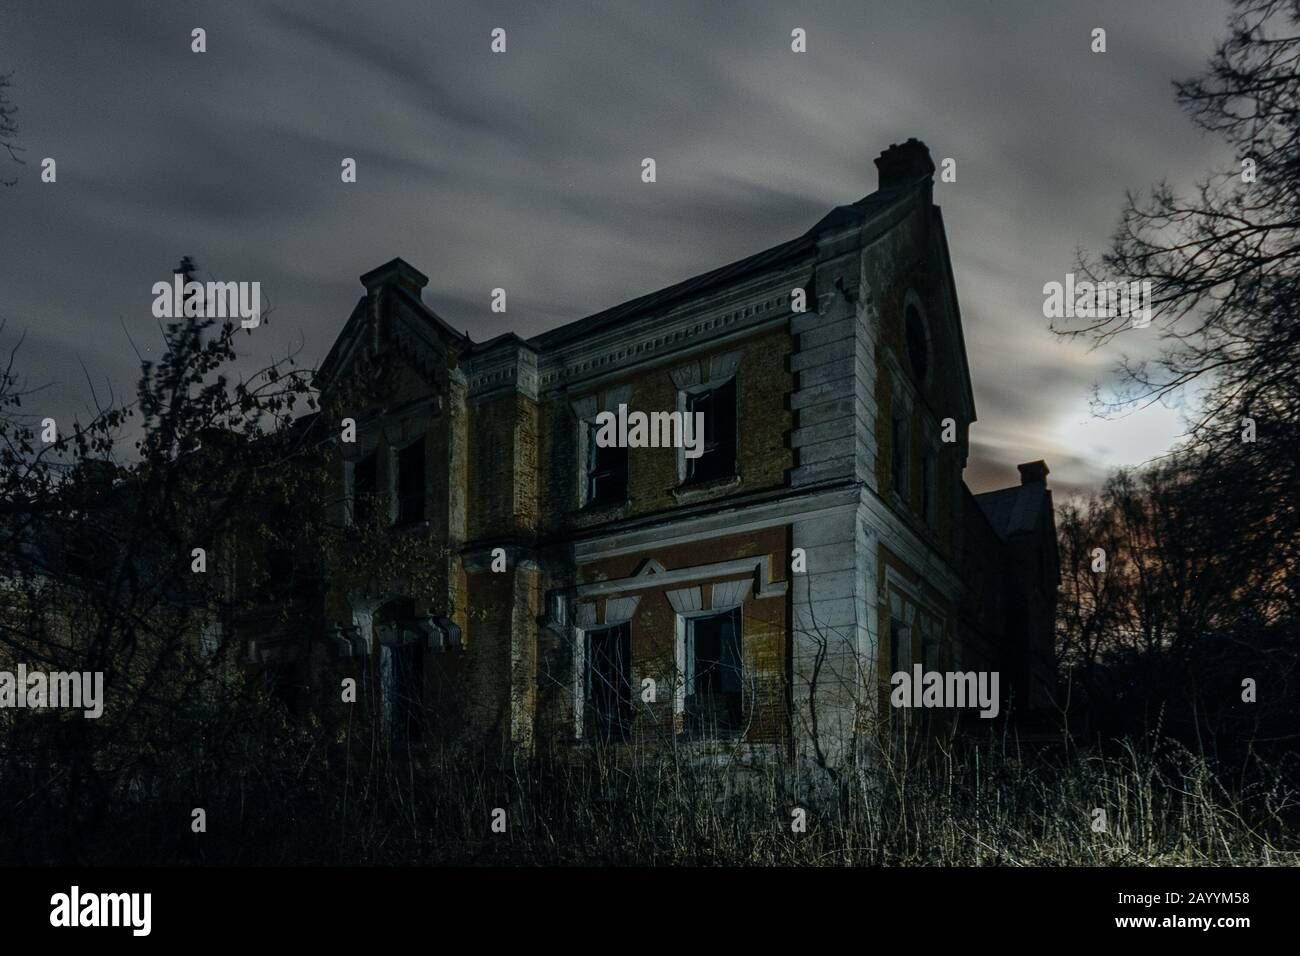 Dark And Creepy Old Abandoned Haunted Mansion At Night Former Karl Von Meck House Stock Photo Alamy